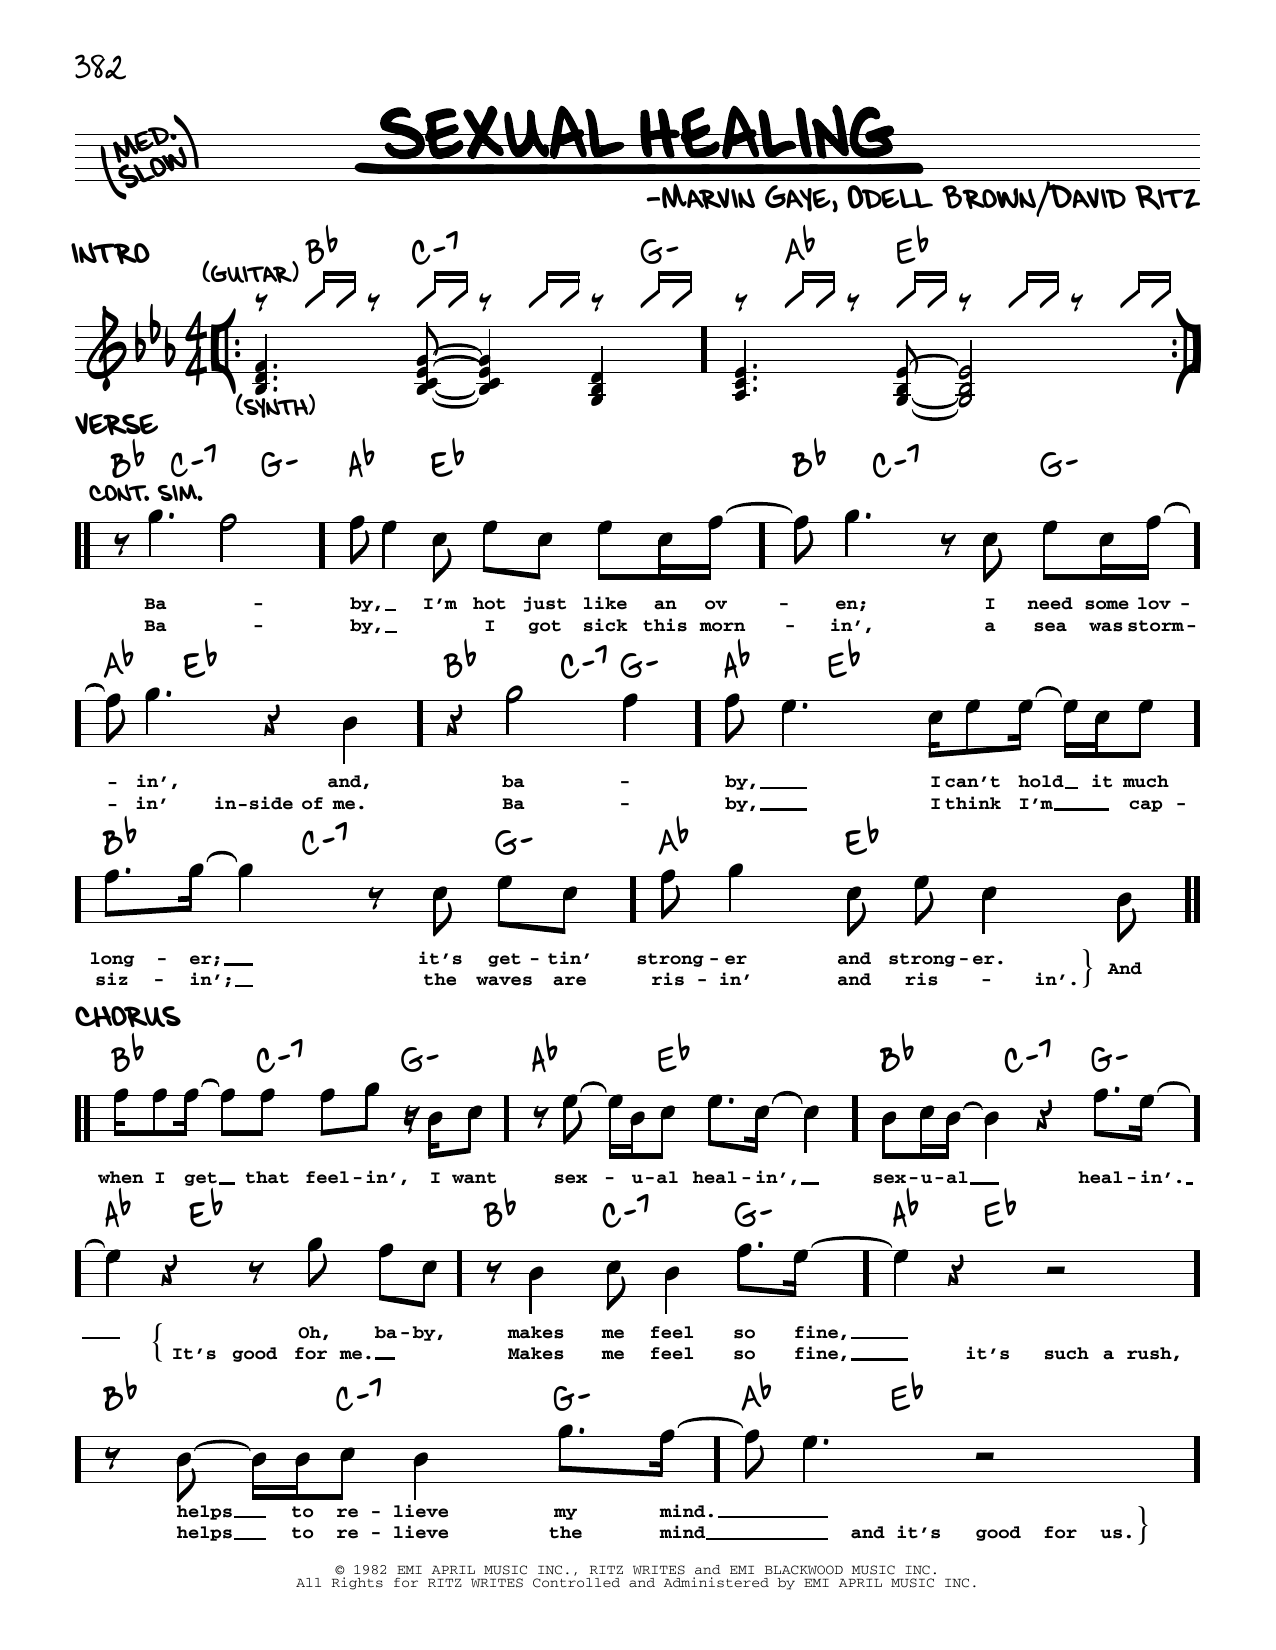 Marvin Gaye Sexual Healing sheet music notes and chords